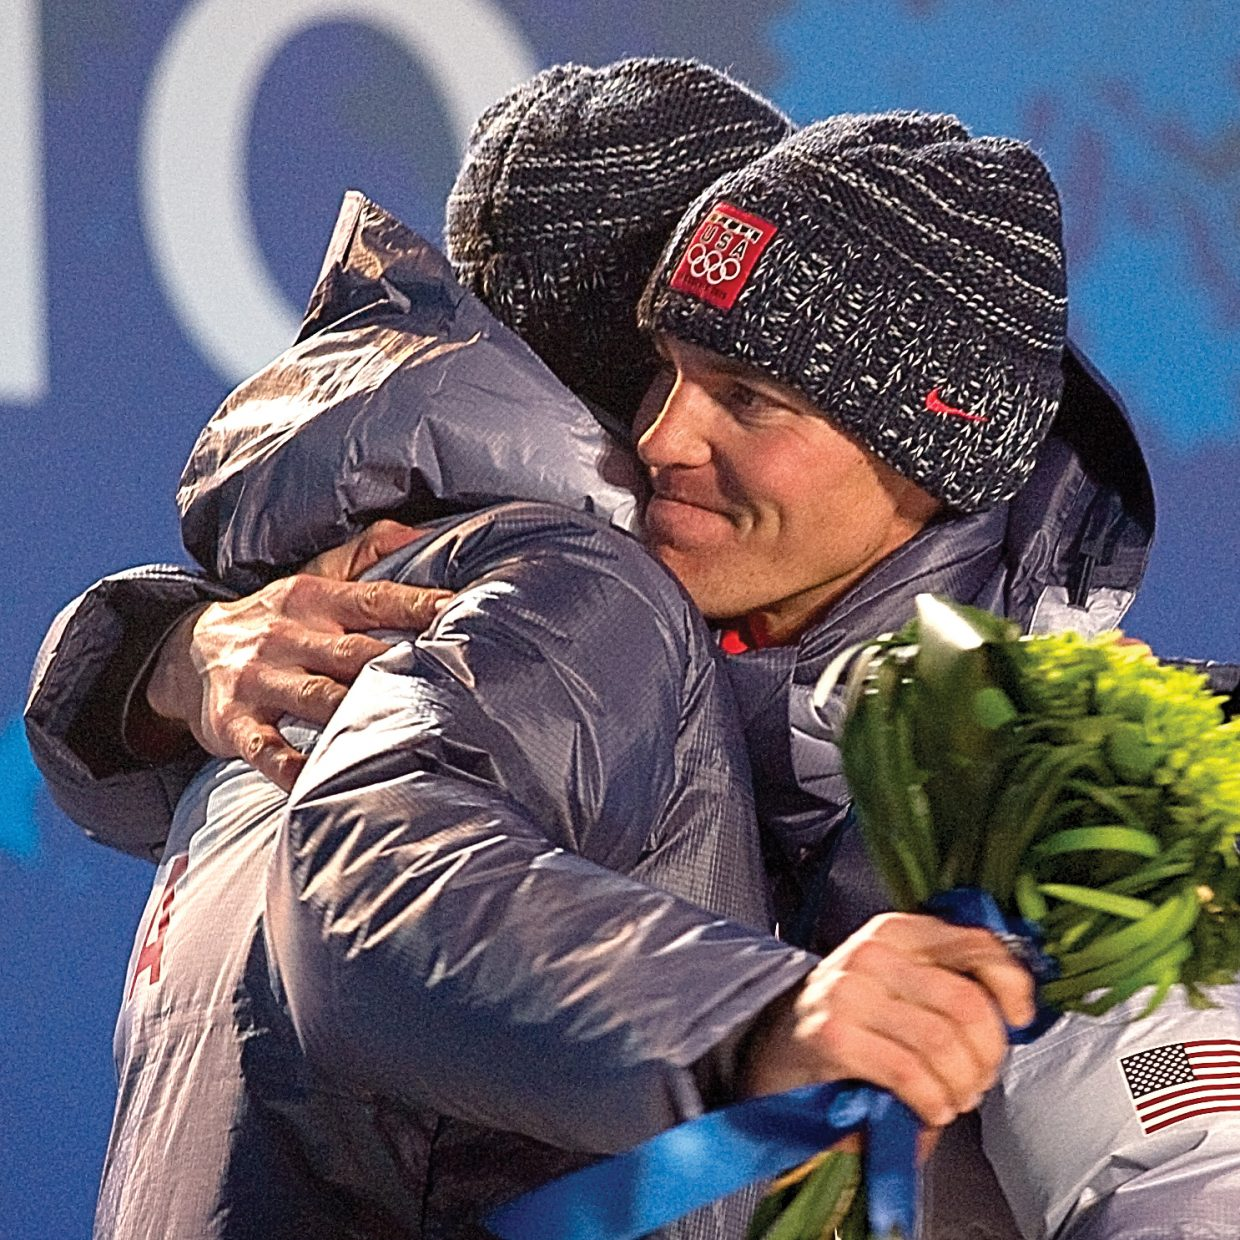 Olympic gold medalist Billy Demong, right, hugs teammate Johnny Spillane at Whistler Olympic Celebration Plaza on Thursday night. The pair dominated today's large hill individual Gundersen event. Steamboat's Spillane, who was also second in the normal Hill Individual Gundersen event Feb. 14, earned the silver to cap off the U.S. Ski Team's best showing at an Olympics.